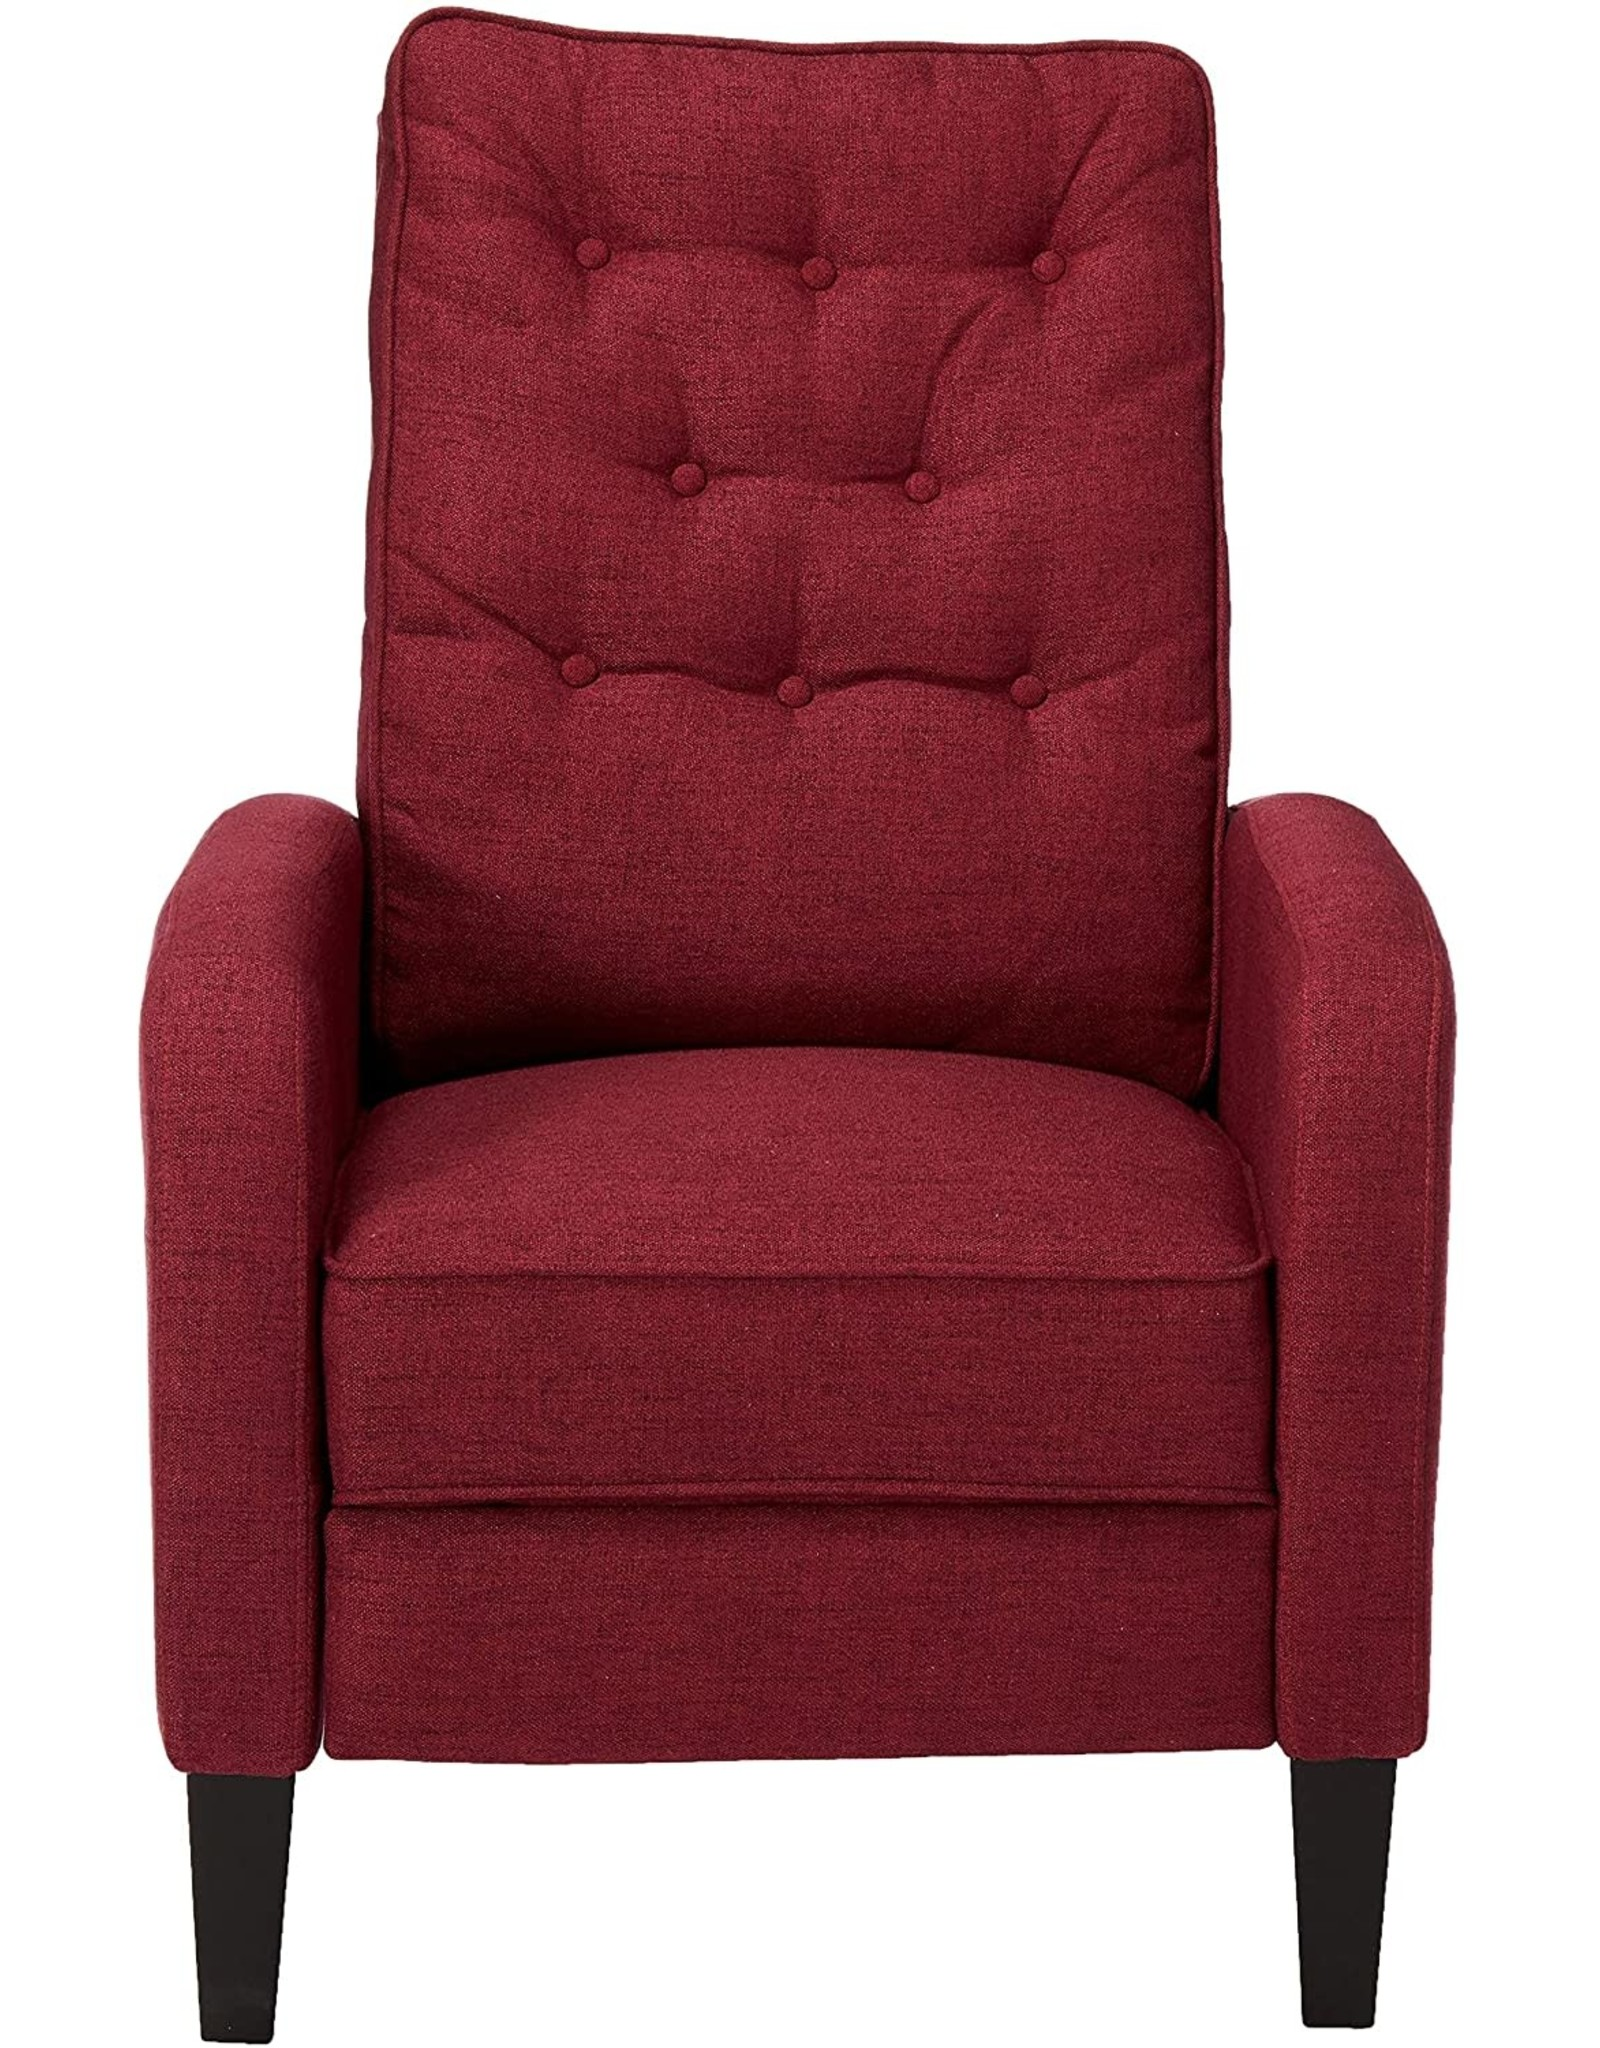 Christopher Knight Christopher Knight Home Nievis Tufted Fabric Recliner, Deep Red / Dark Brown